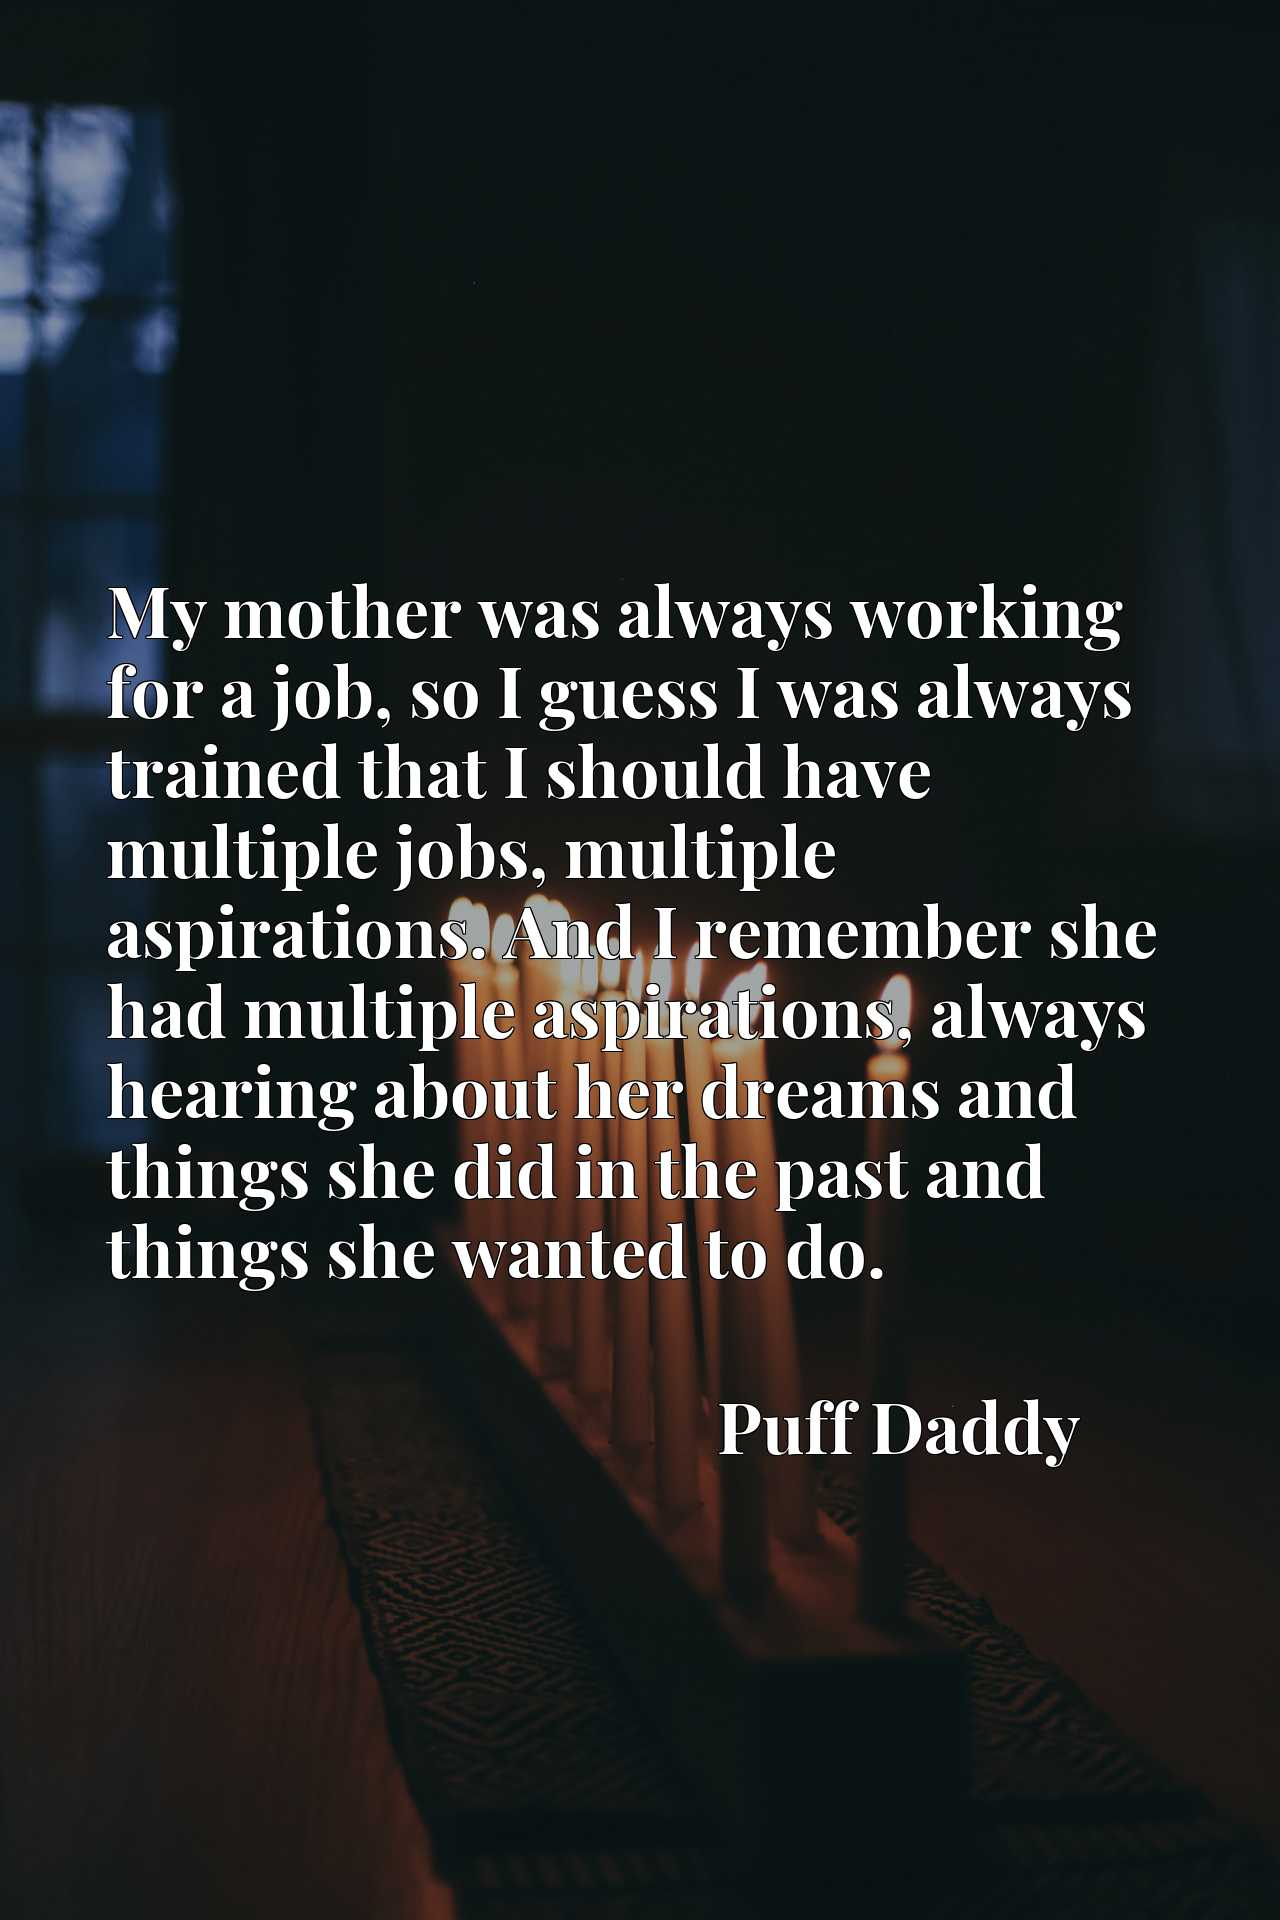 My mother was always working for a job, so I guess I was always trained that I should have multiple jobs, multiple aspirations. And I remember she had multiple aspirations, always hearing about her dreams and things she did in the past and things she wanted to do.